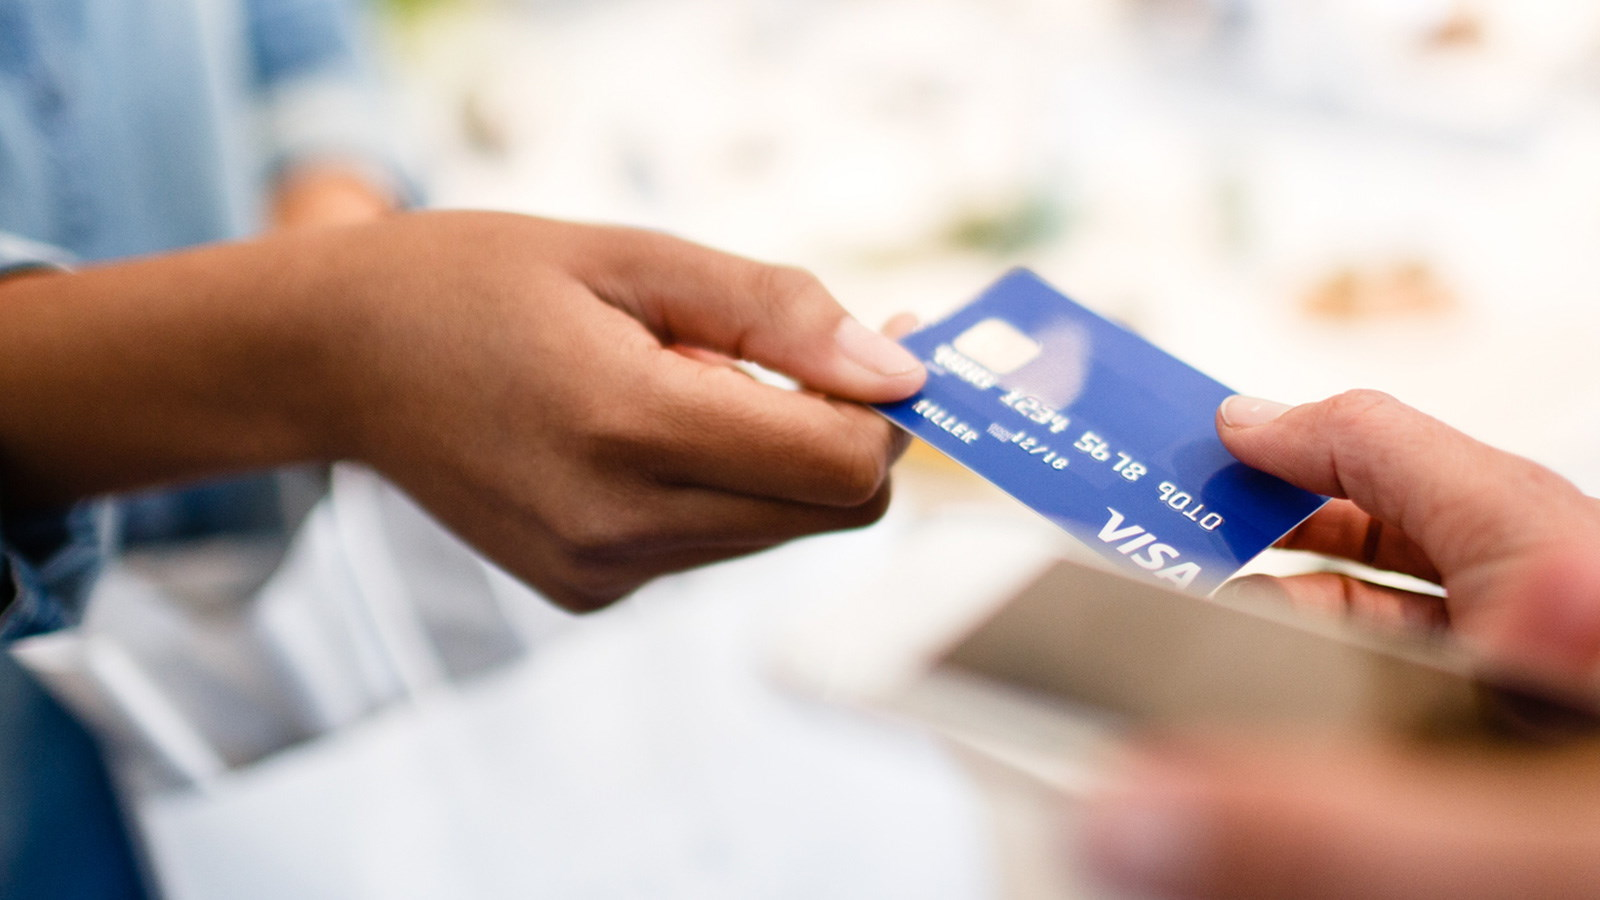 Woman passing debit card